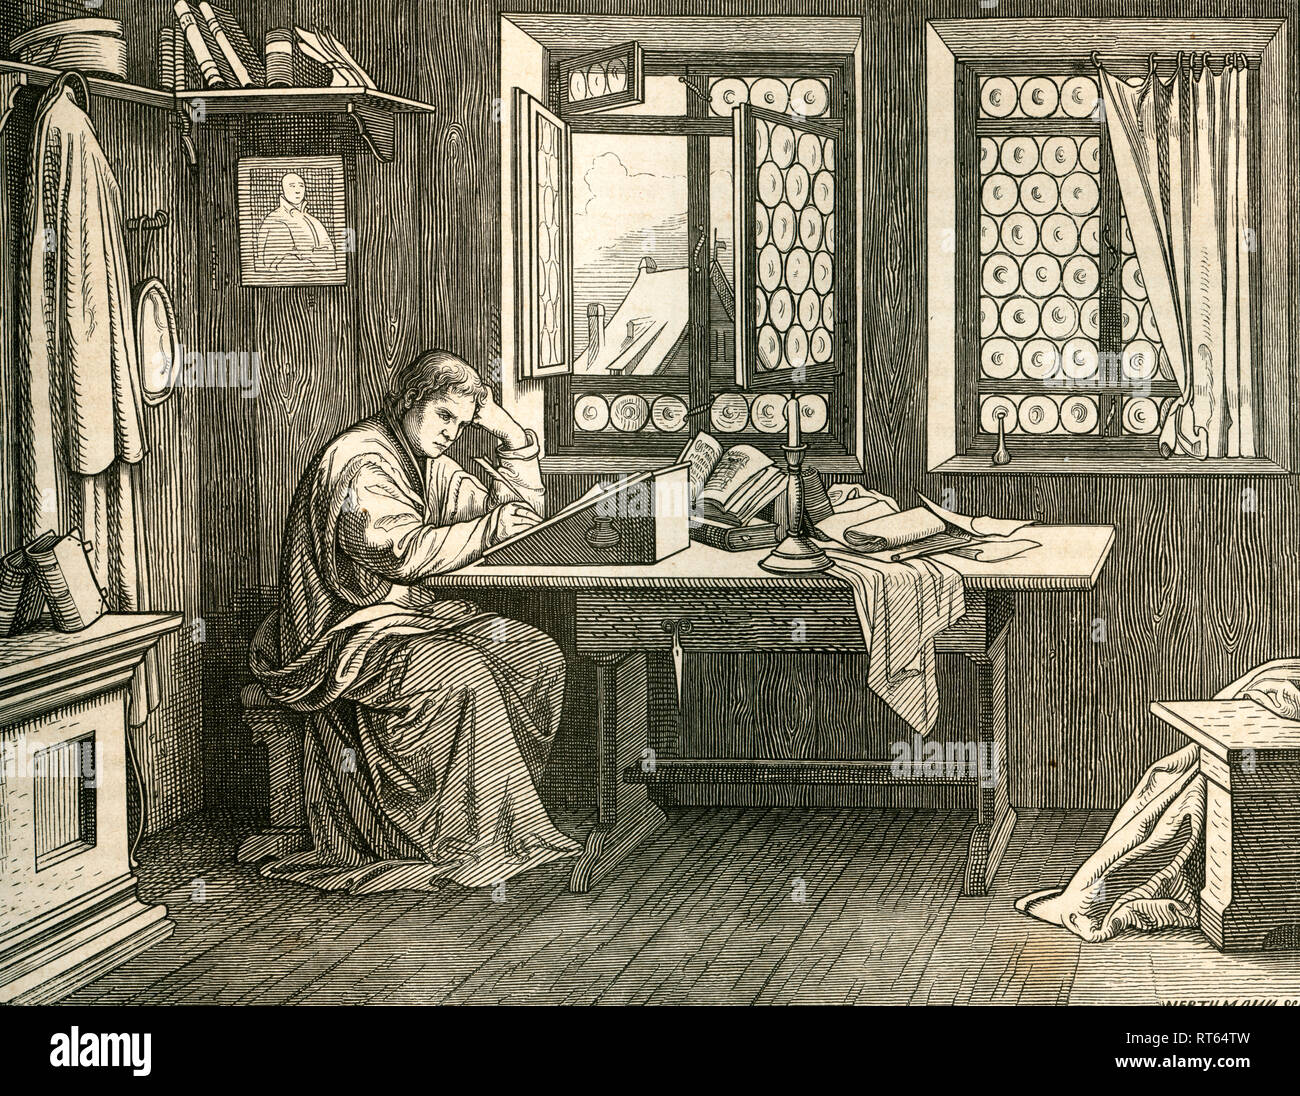 Martin Luther on the Wartburg, illustration (drawn by Trenkwald, engraved by Werthmann) from: 'Die Deutsche Geschichte in Bildern ' (images of German history), text by Dr. F. Bülau, published by C.C. Meinhold and sons, Dresden, 1862., Additional-Rights-Clearance-Info-Not-Available - Stock Image